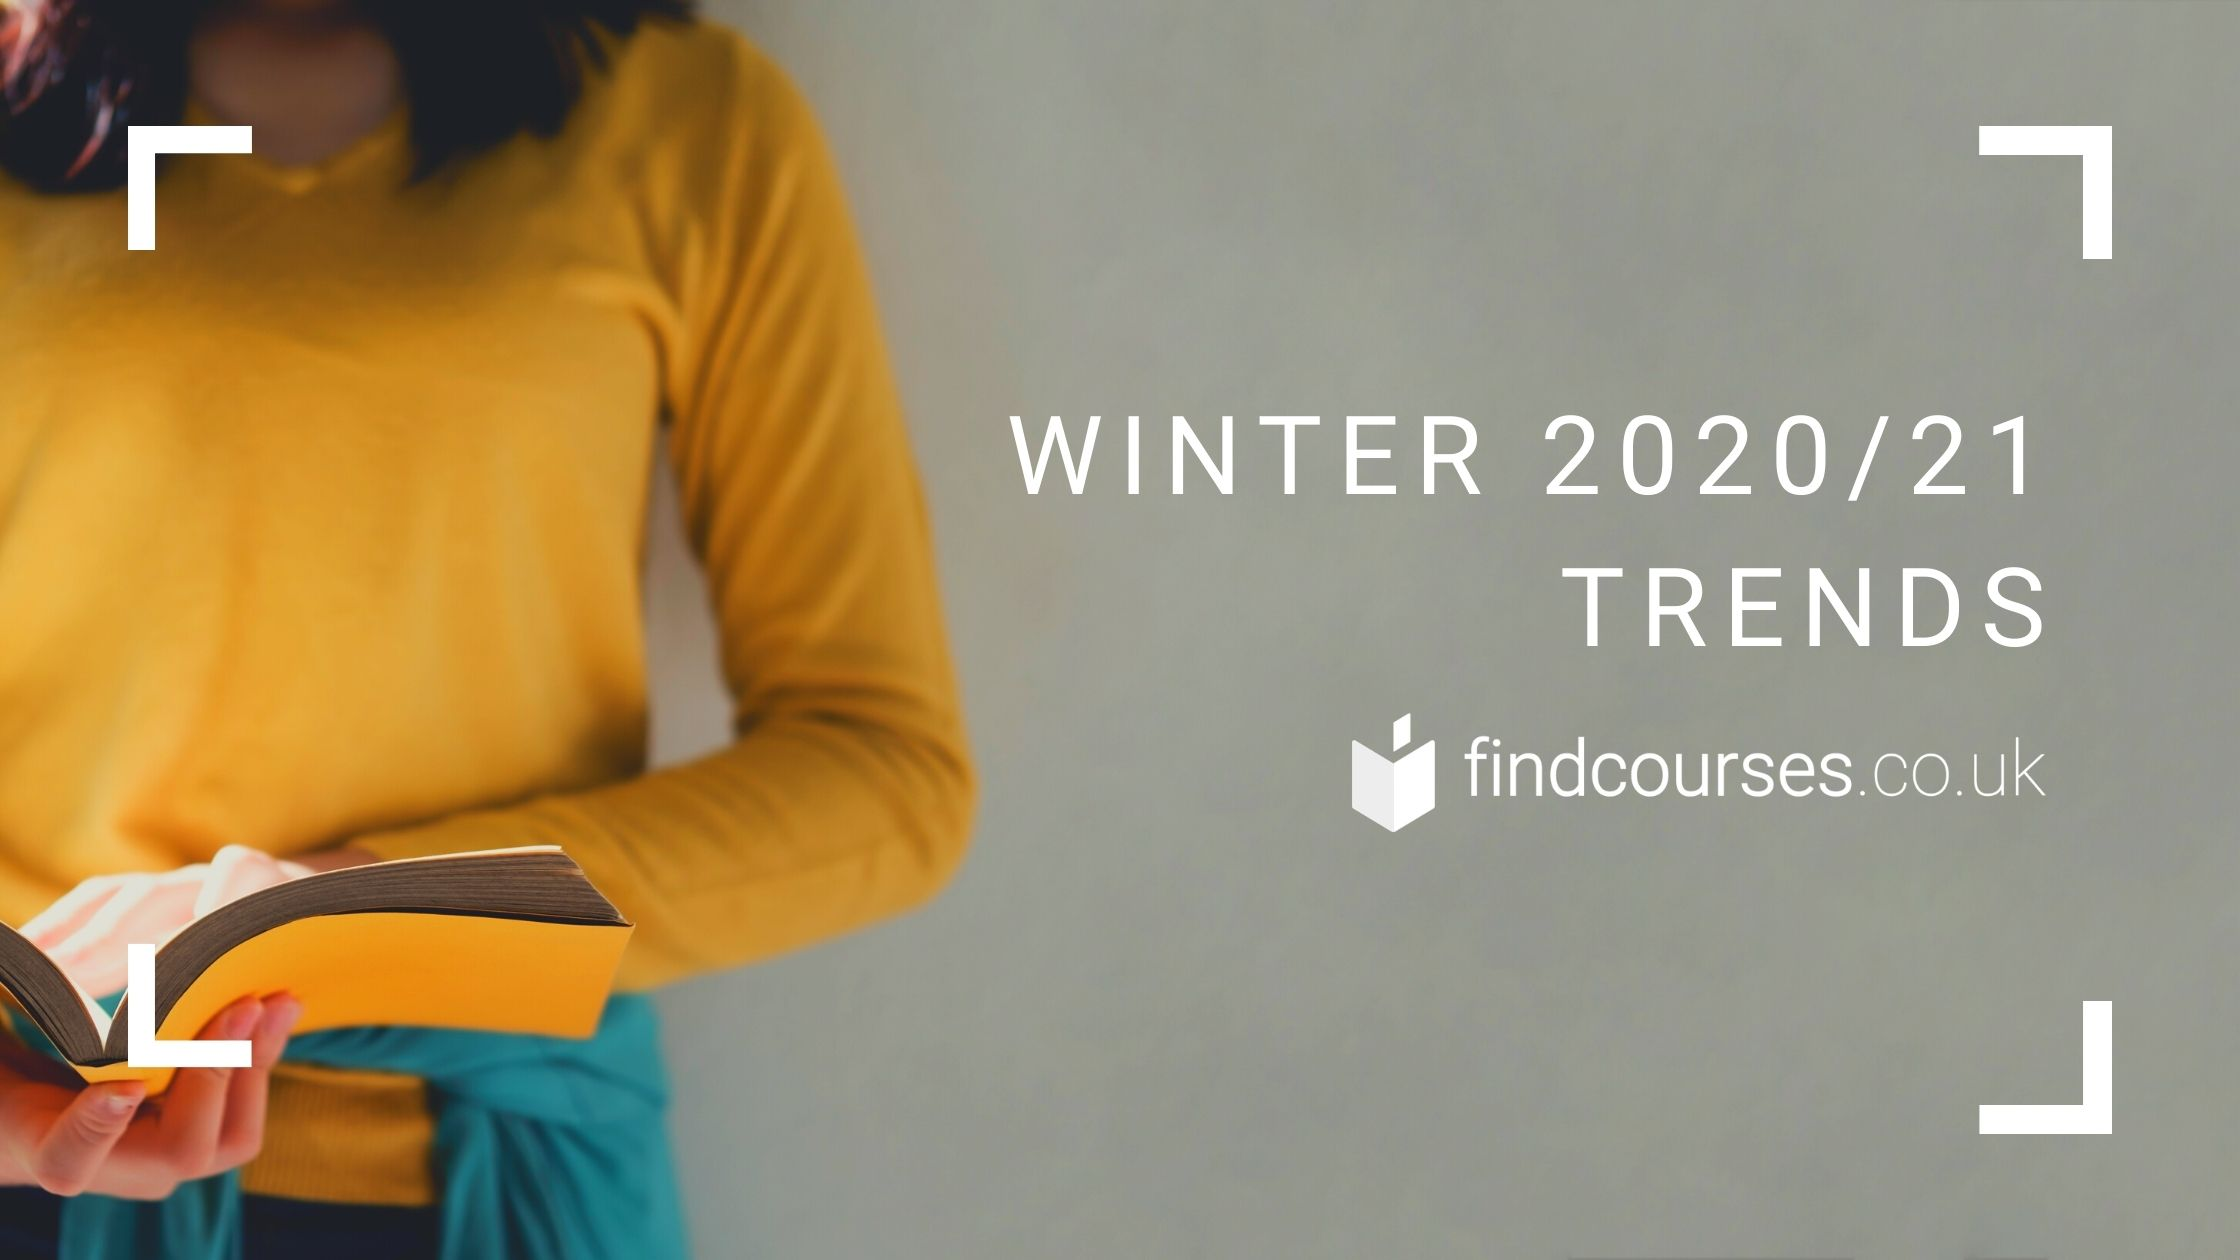 Winter Trends 2020/2021